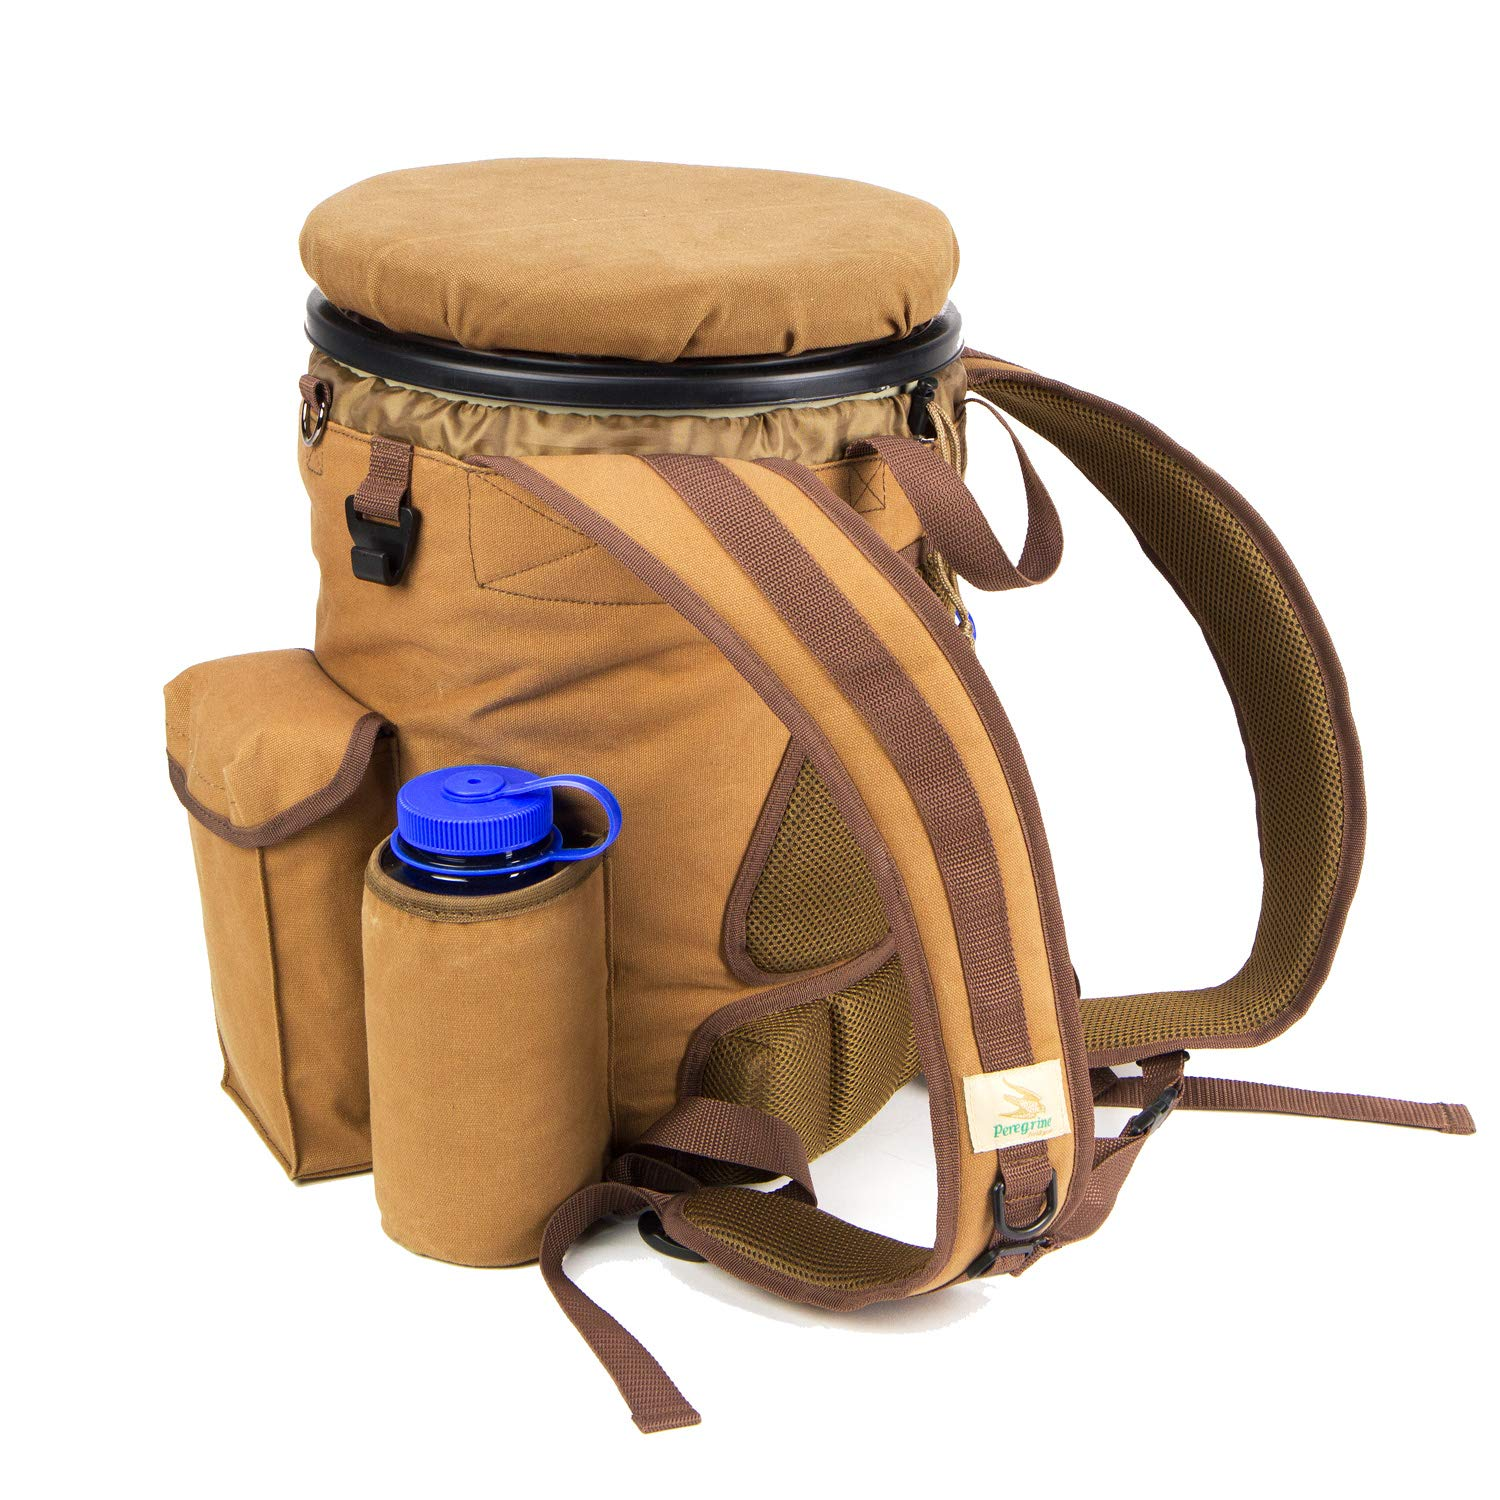 Peregrine Field Gear PFG-VBP3B-BRN Venture Hunting Bucket Backpack Combo, Brown Canvas